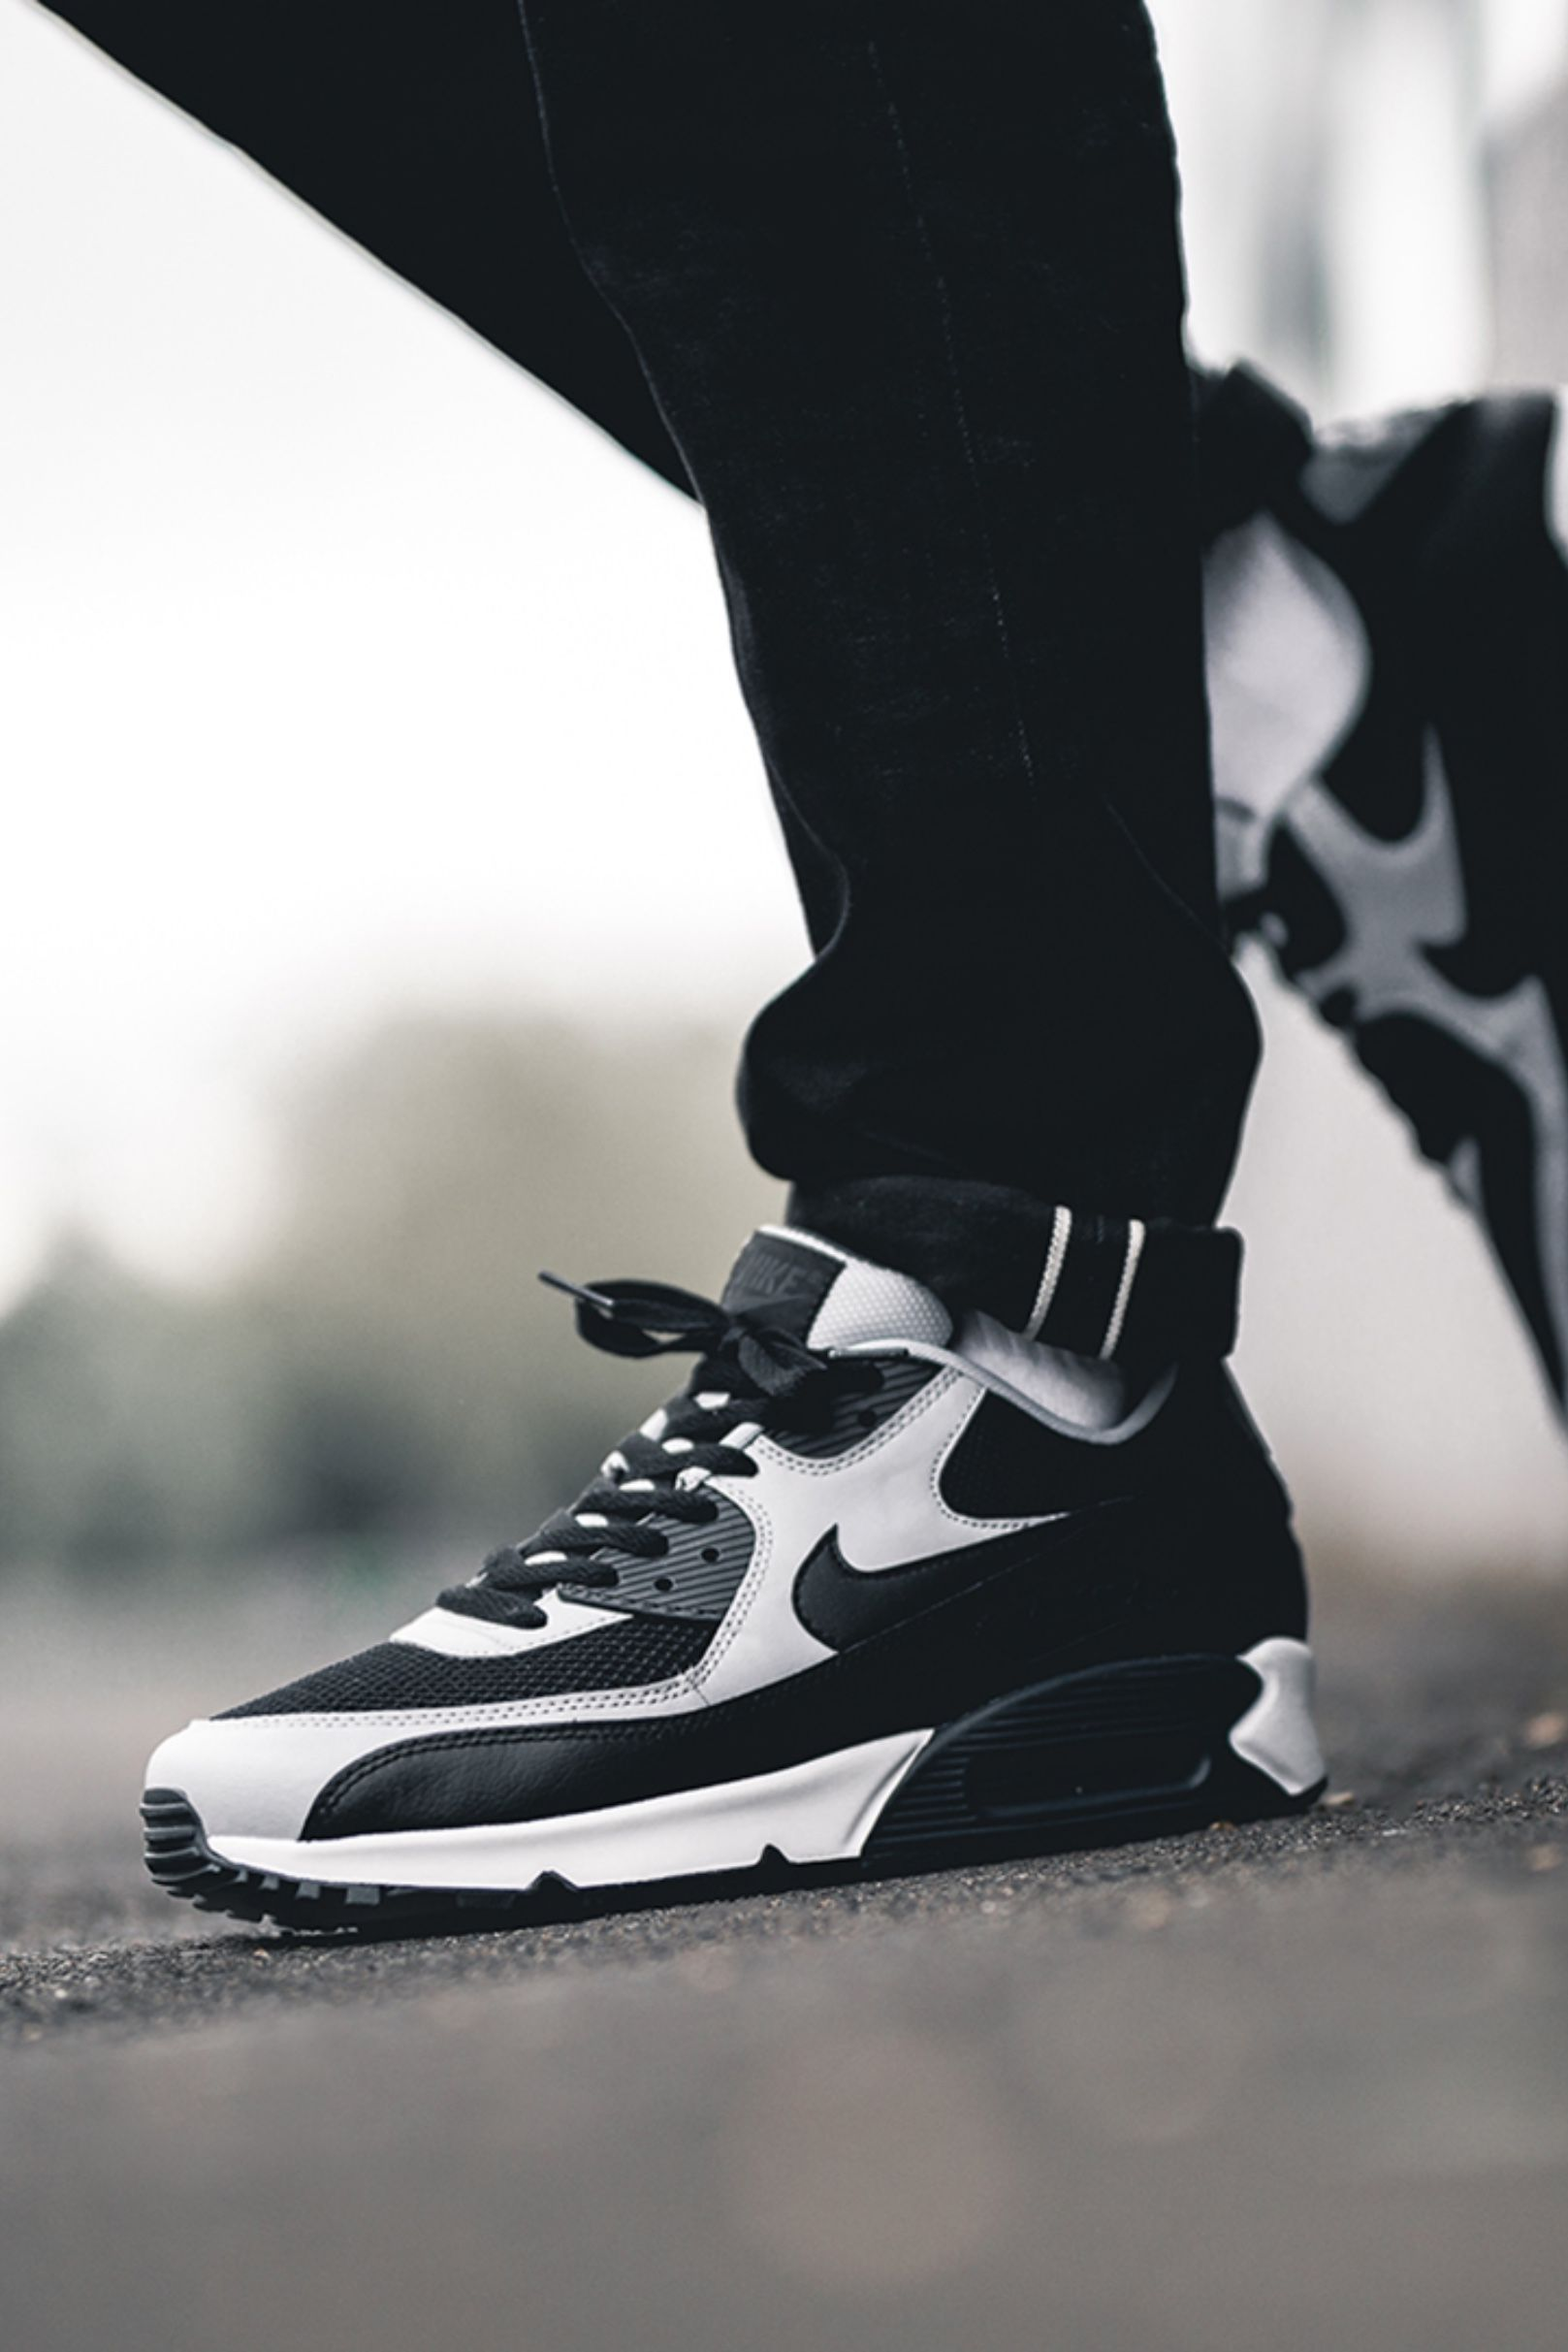 afb918b0c The Nike Air Max 90 has been for decades a place in the retro assortment of